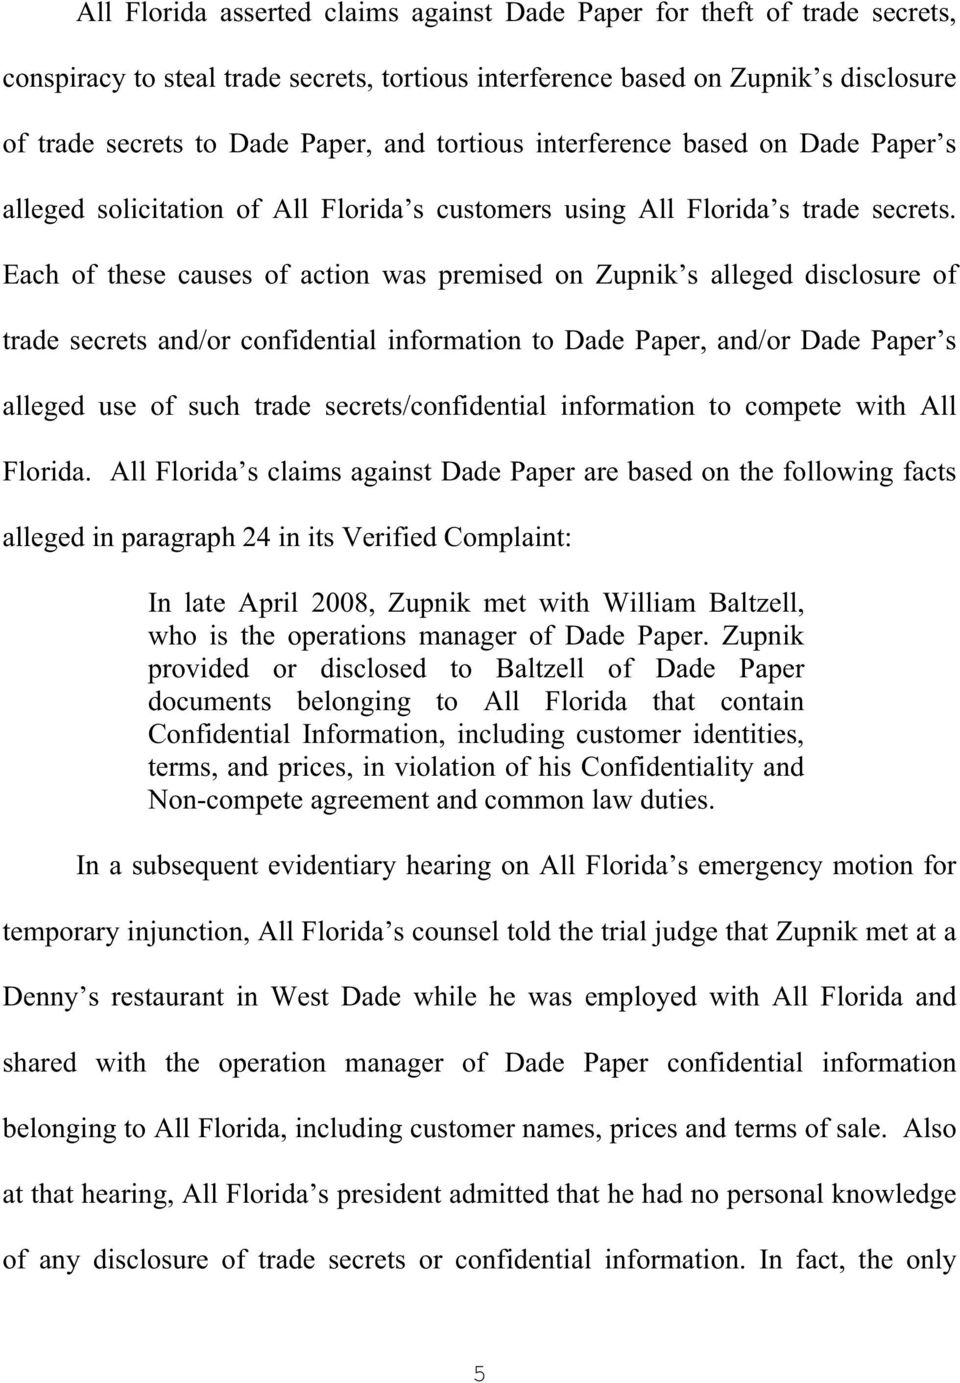 Each of these causes of action was premised on Zupnik s alleged disclosure of trade secrets and/or confidential information to Dade Paper, and/or Dade Paper s alleged use of such trade